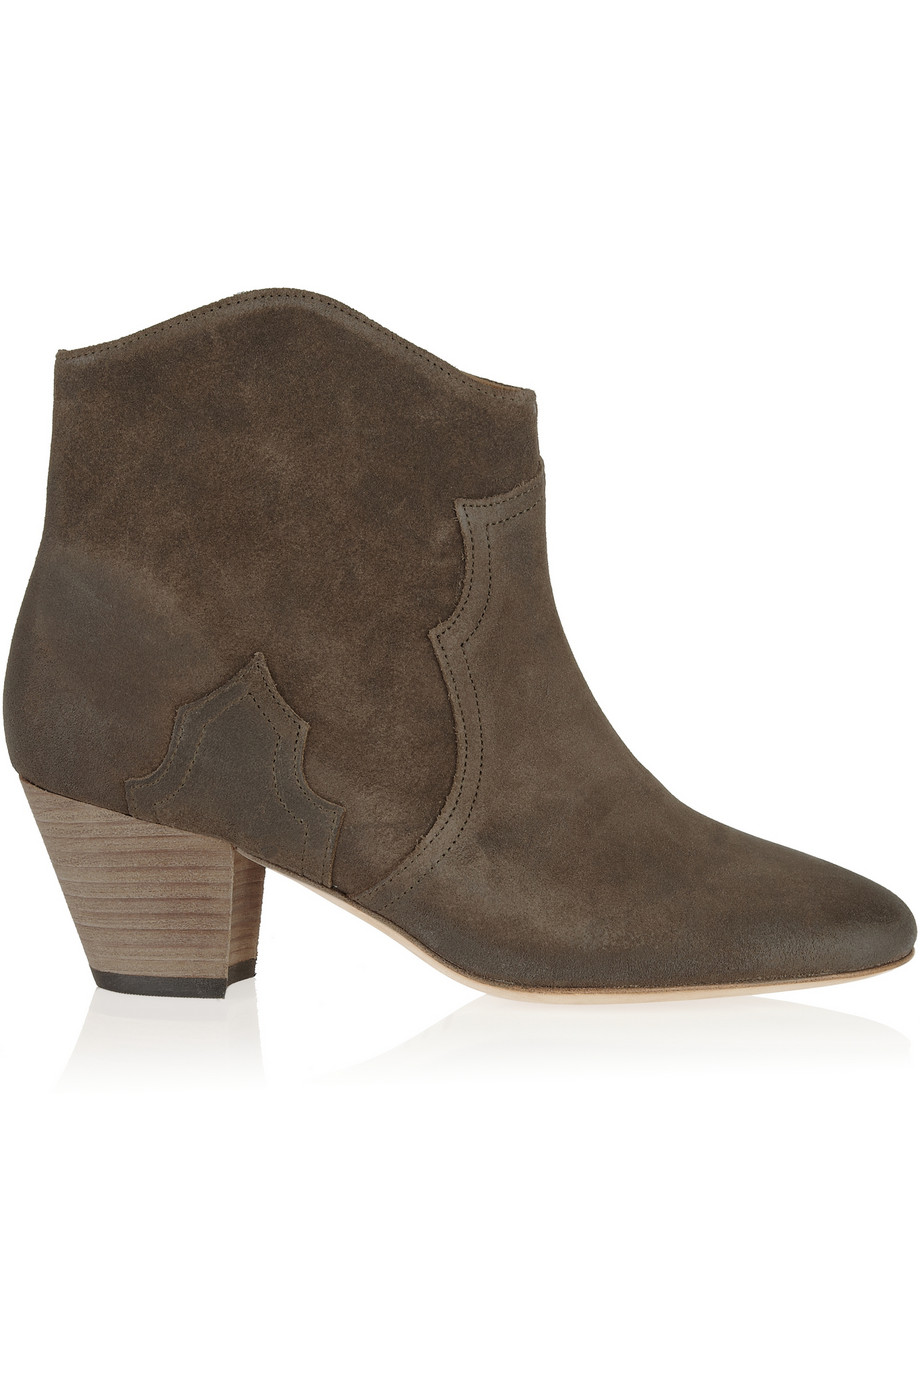 ISABEL MARANT The Dicker suede ankle boots, $650,  net-a-porter.com